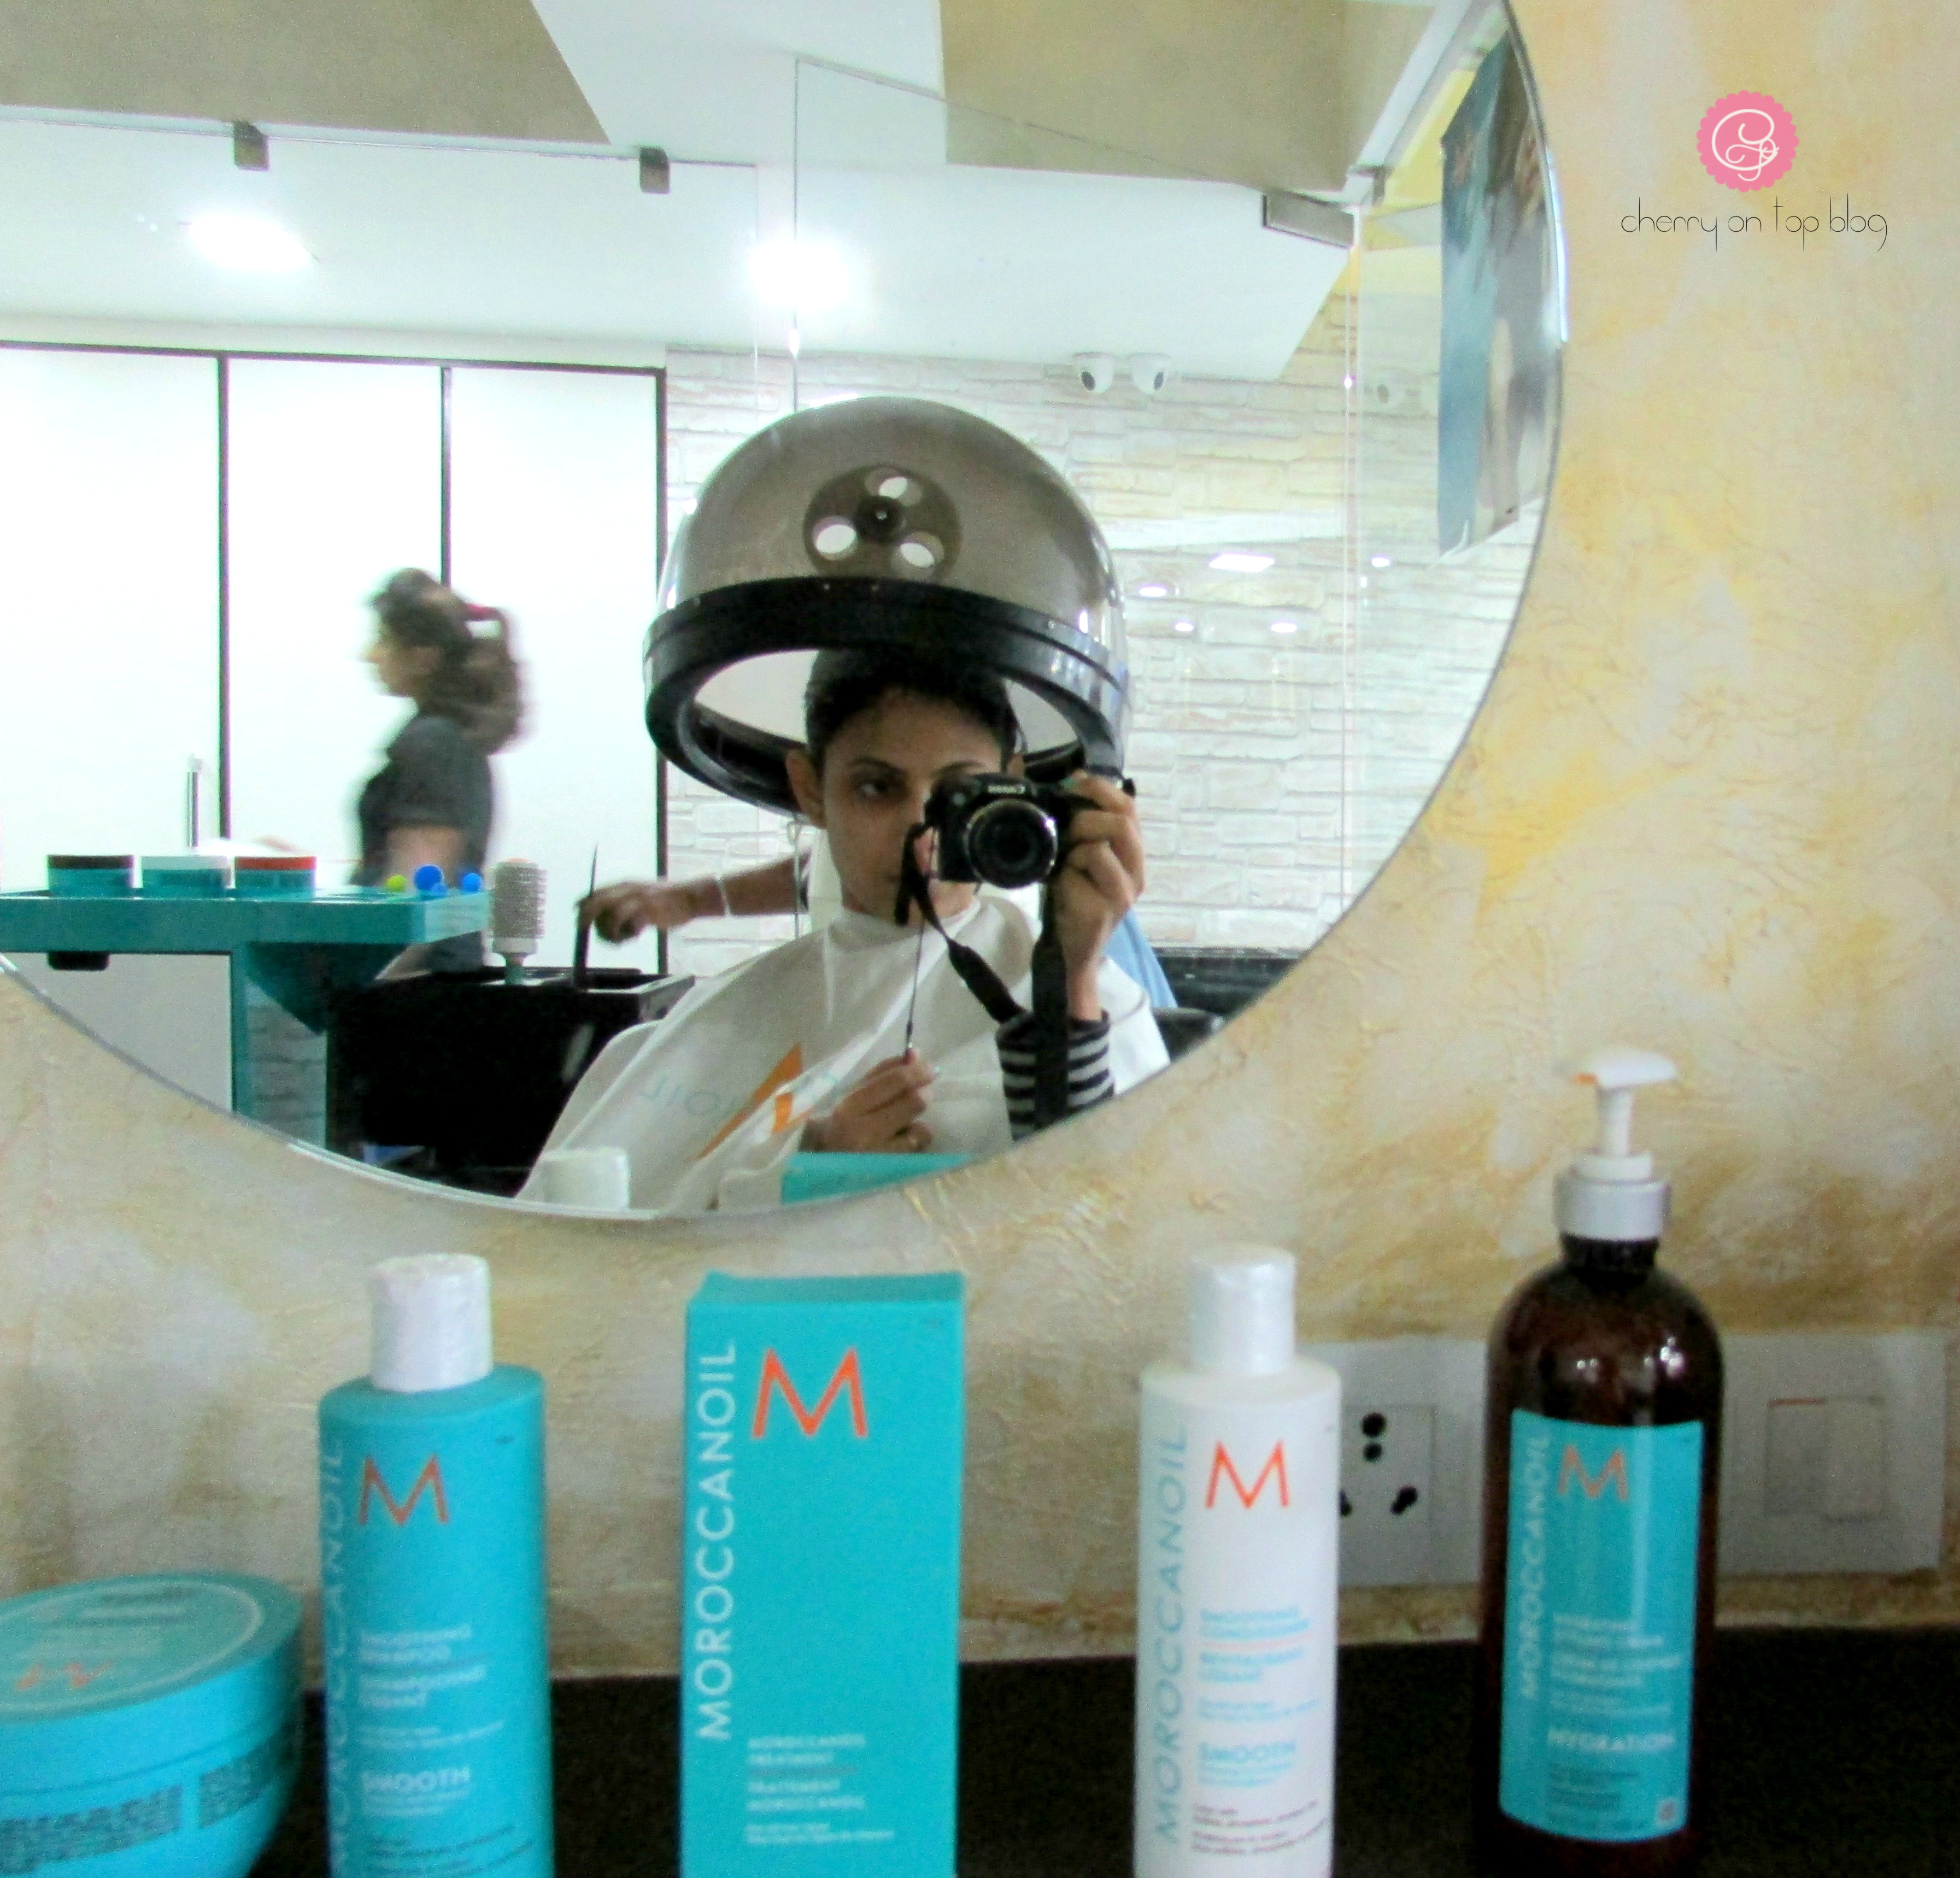 Moroccanoil Smoothing Hair Spa Experience| cherryontopblog.com